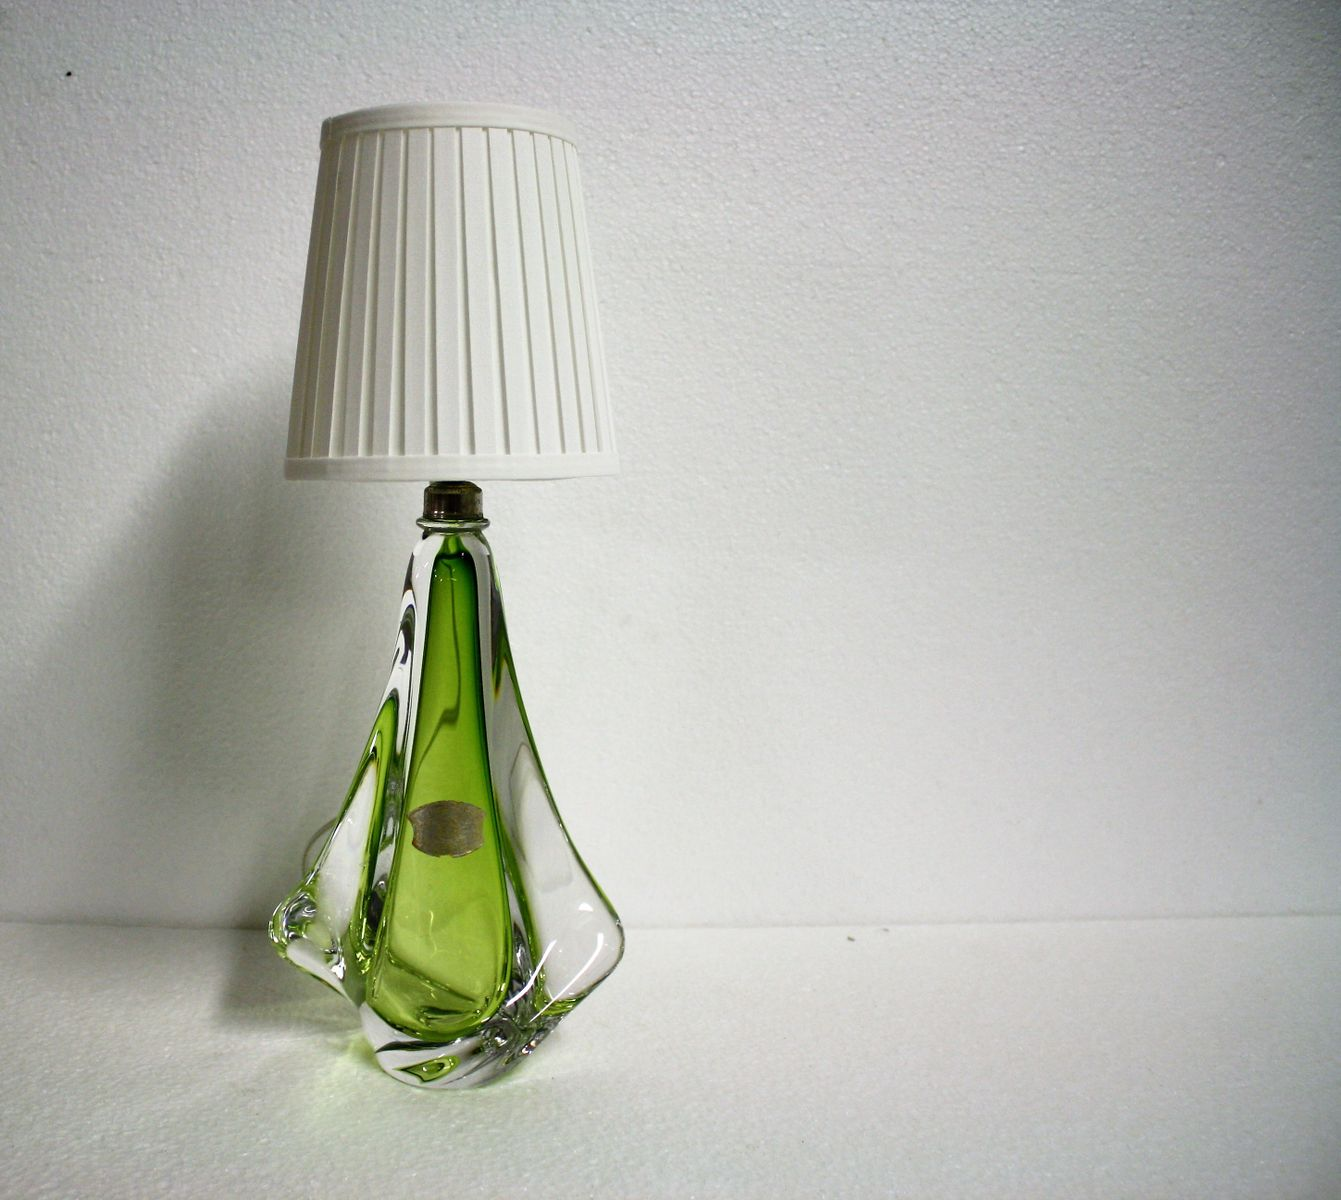 Mid century green crystal table lamp from val saint lambert 1960s mid century green crystal table lamp from val saint lambert 1960s mozeypictures Images